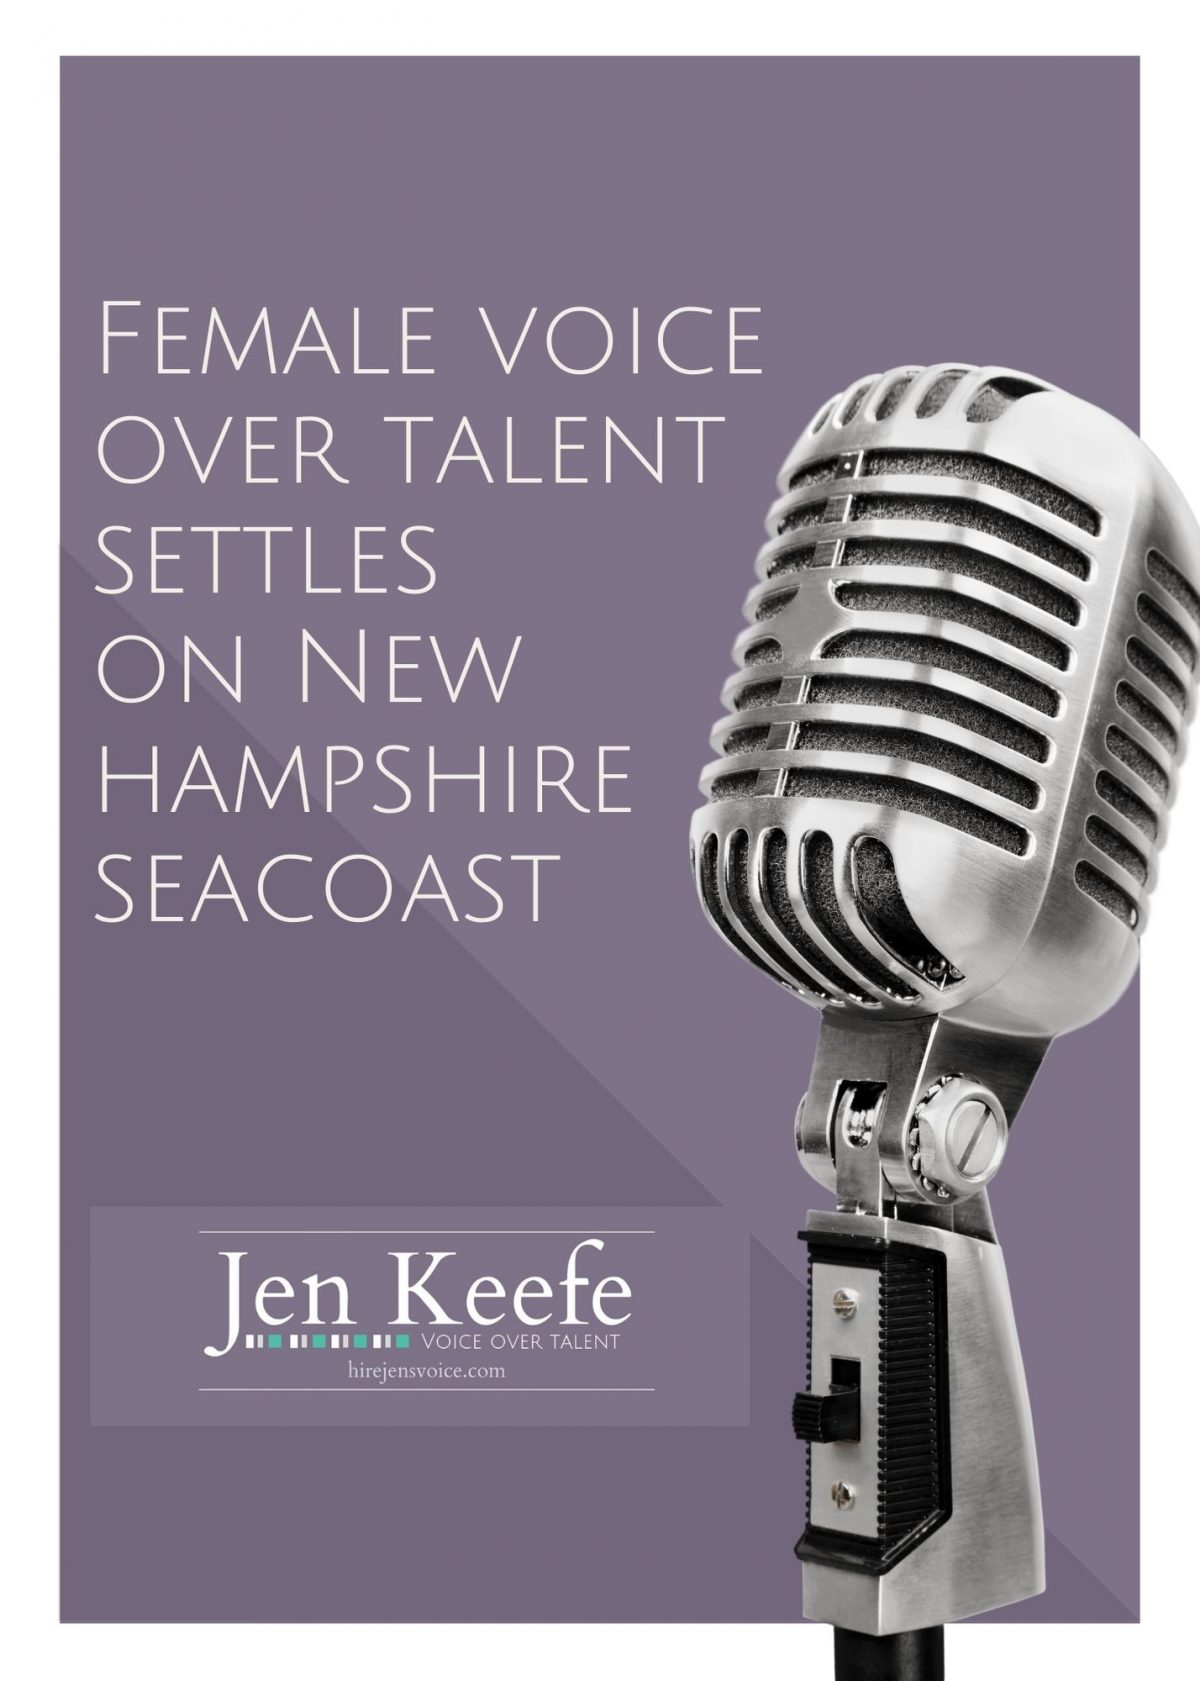 New Hampshire Voice Over Talent Settles on Seacoast